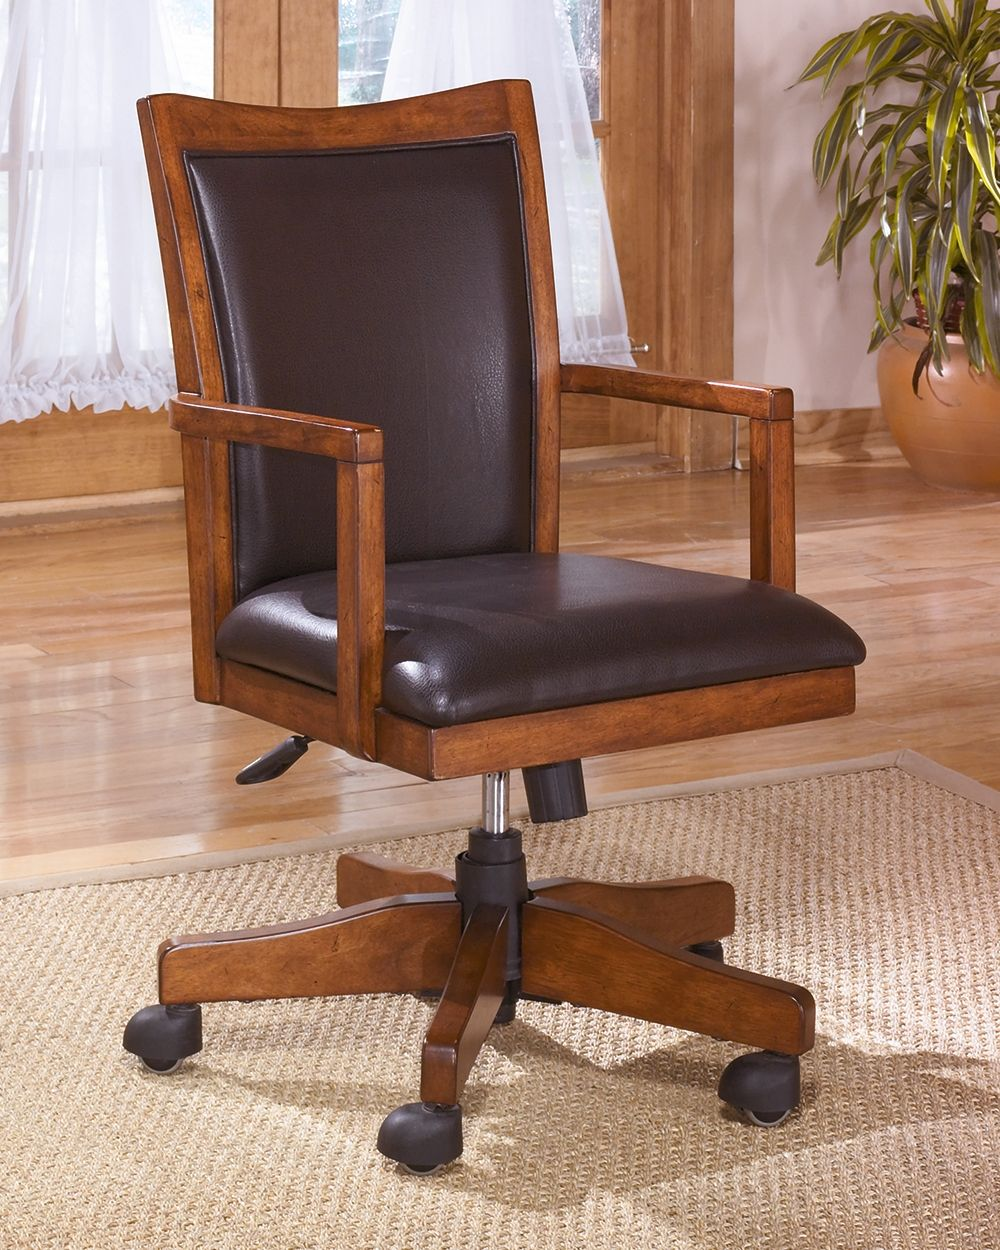 Cross Island Home Office Desk Chair Medium Brown Products